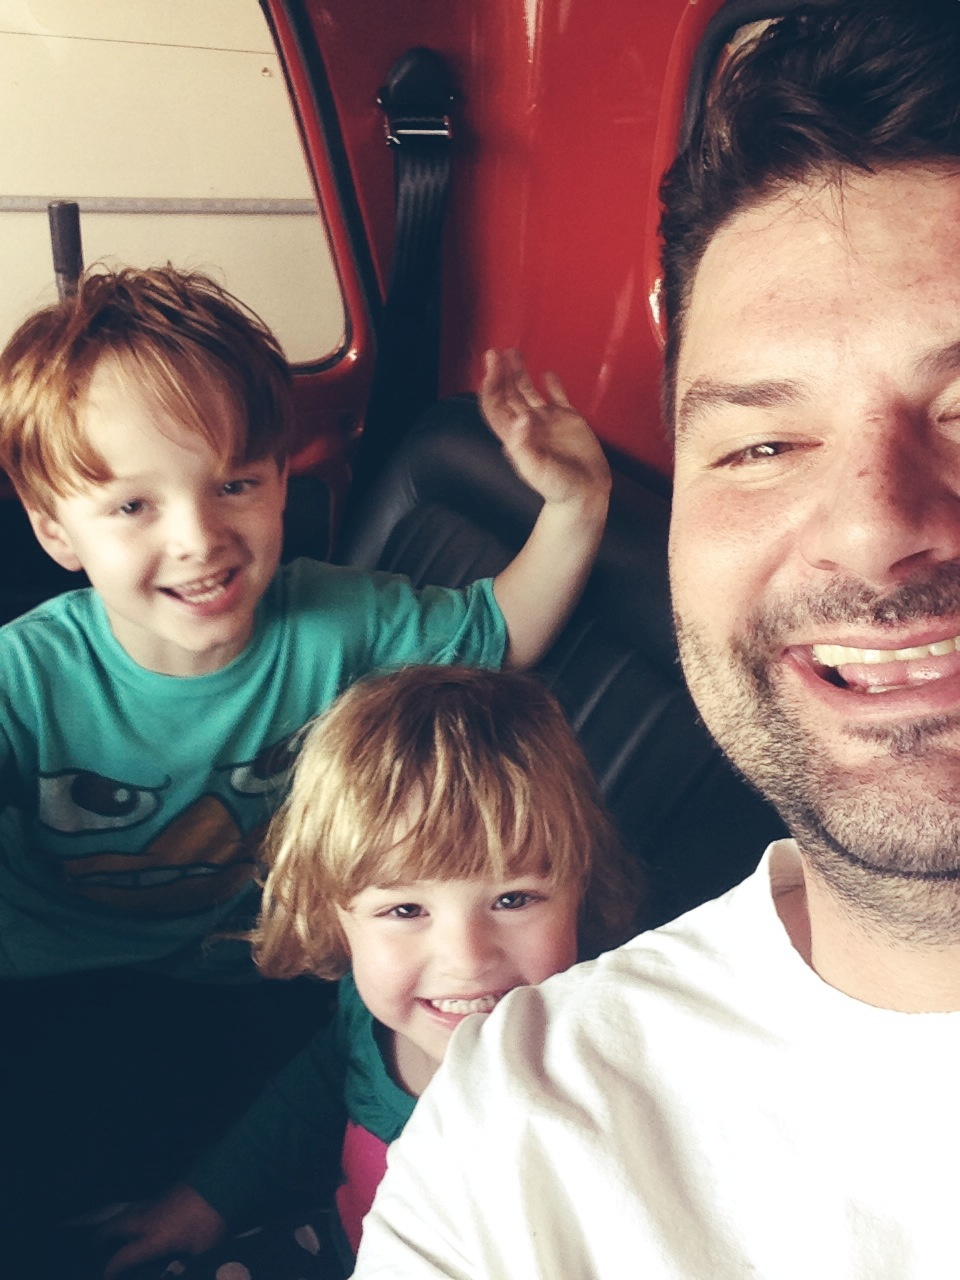 When I travel, Rich sends me photos like these of him and the kids. They are my favorite part of business travel.